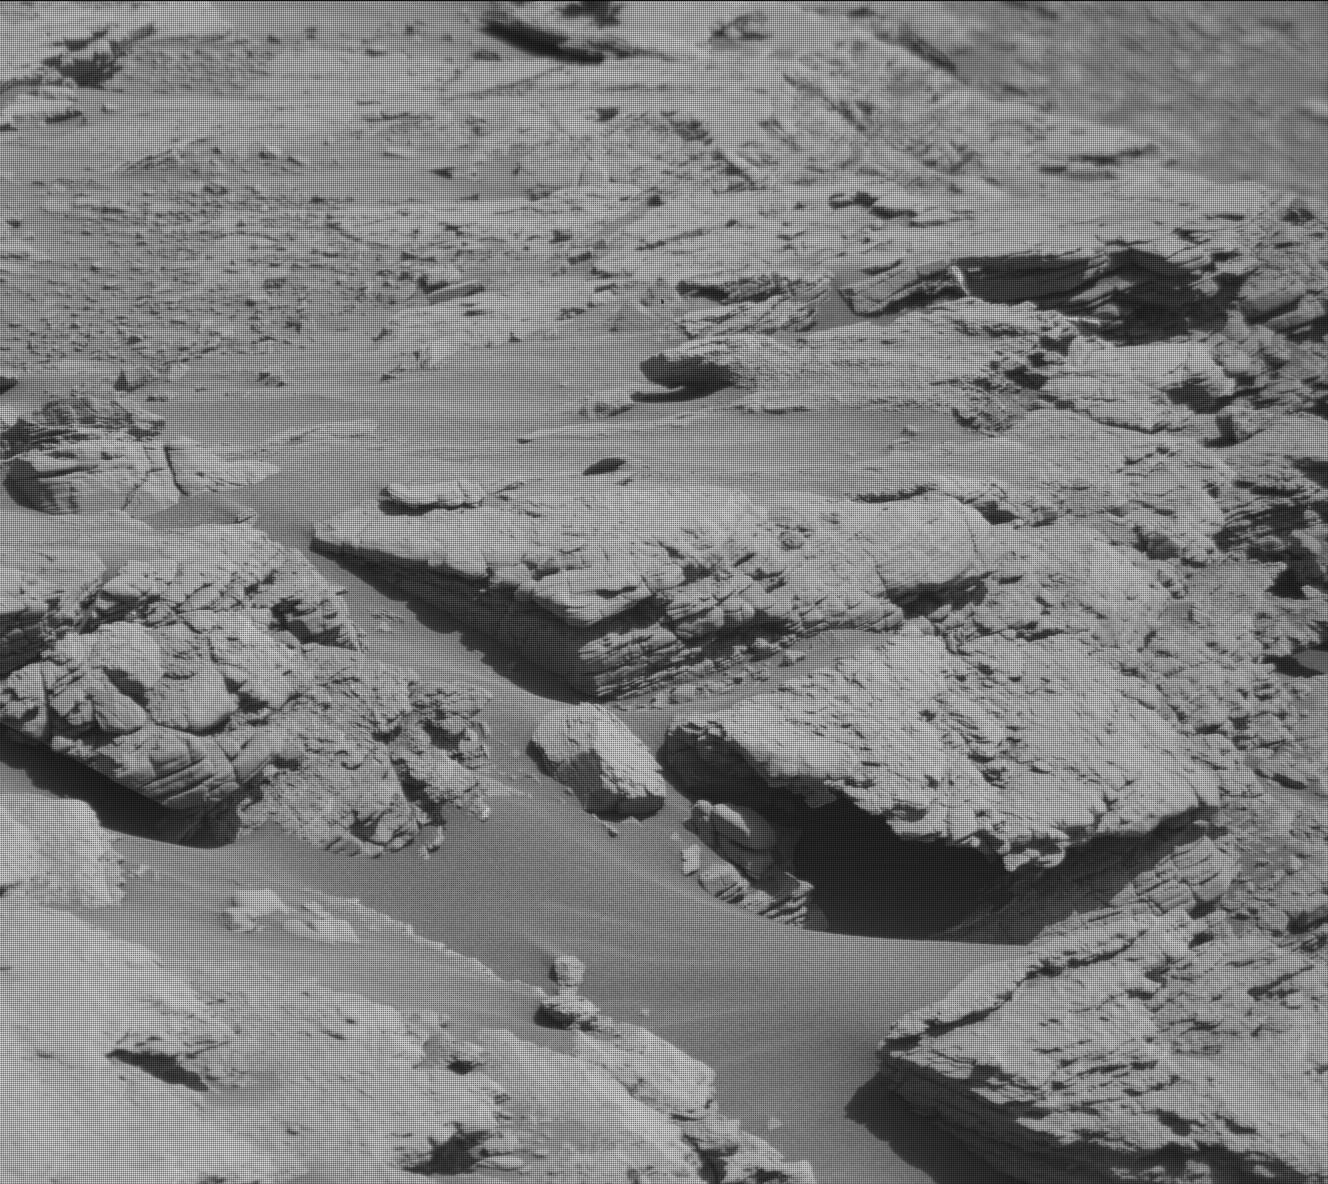 Nasa's Mars rover Curiosity acquired this image using its Mast Camera (Mastcam) on Sol 2523